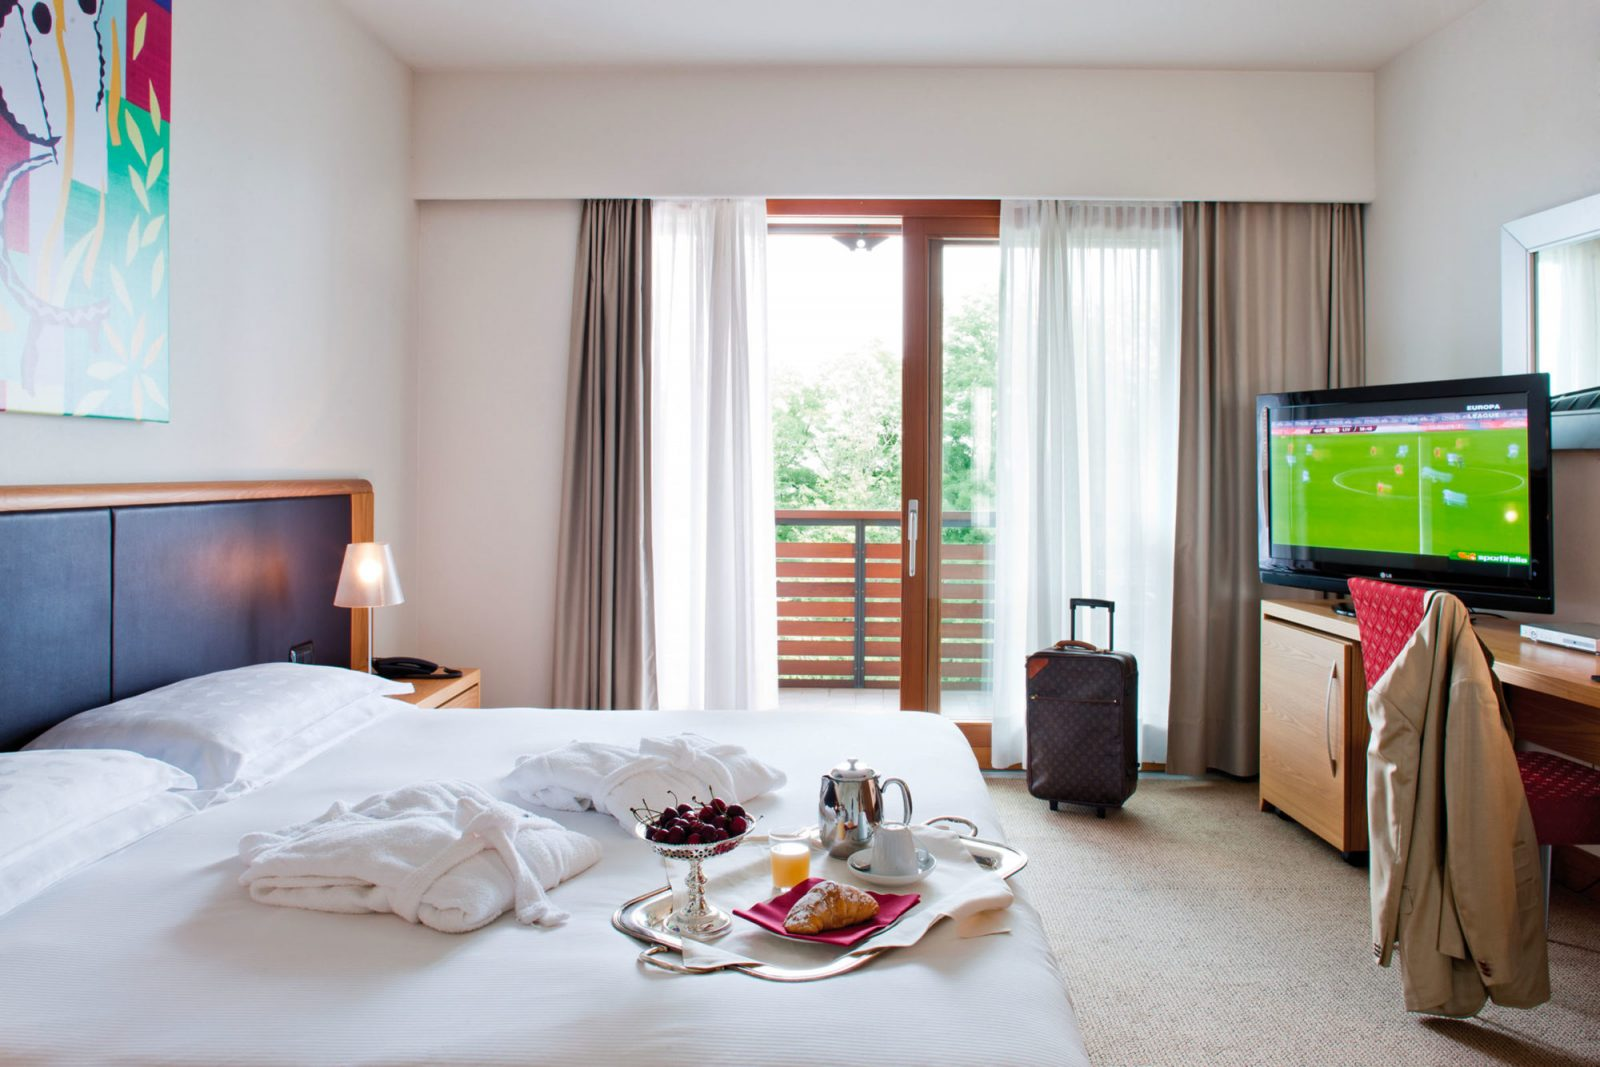 Weekend Last Minute Hotel Relais Le Betulle Conegliano